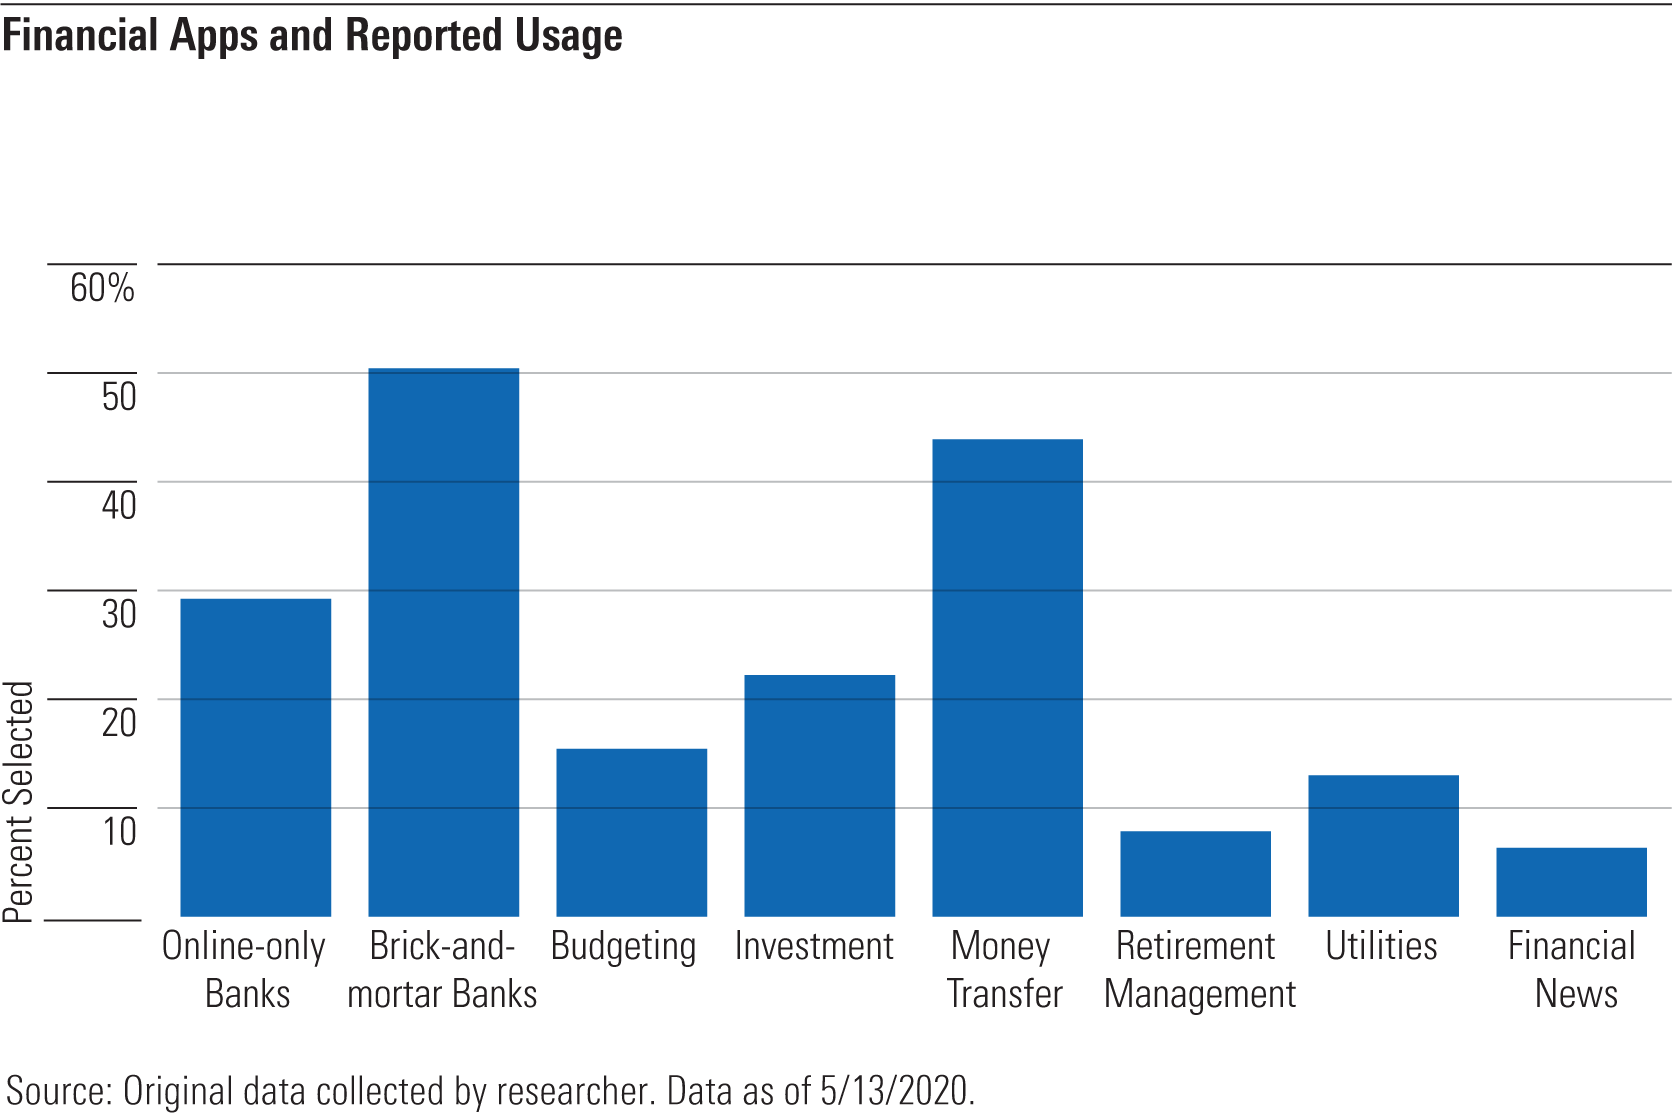 Financial apps and reported usage